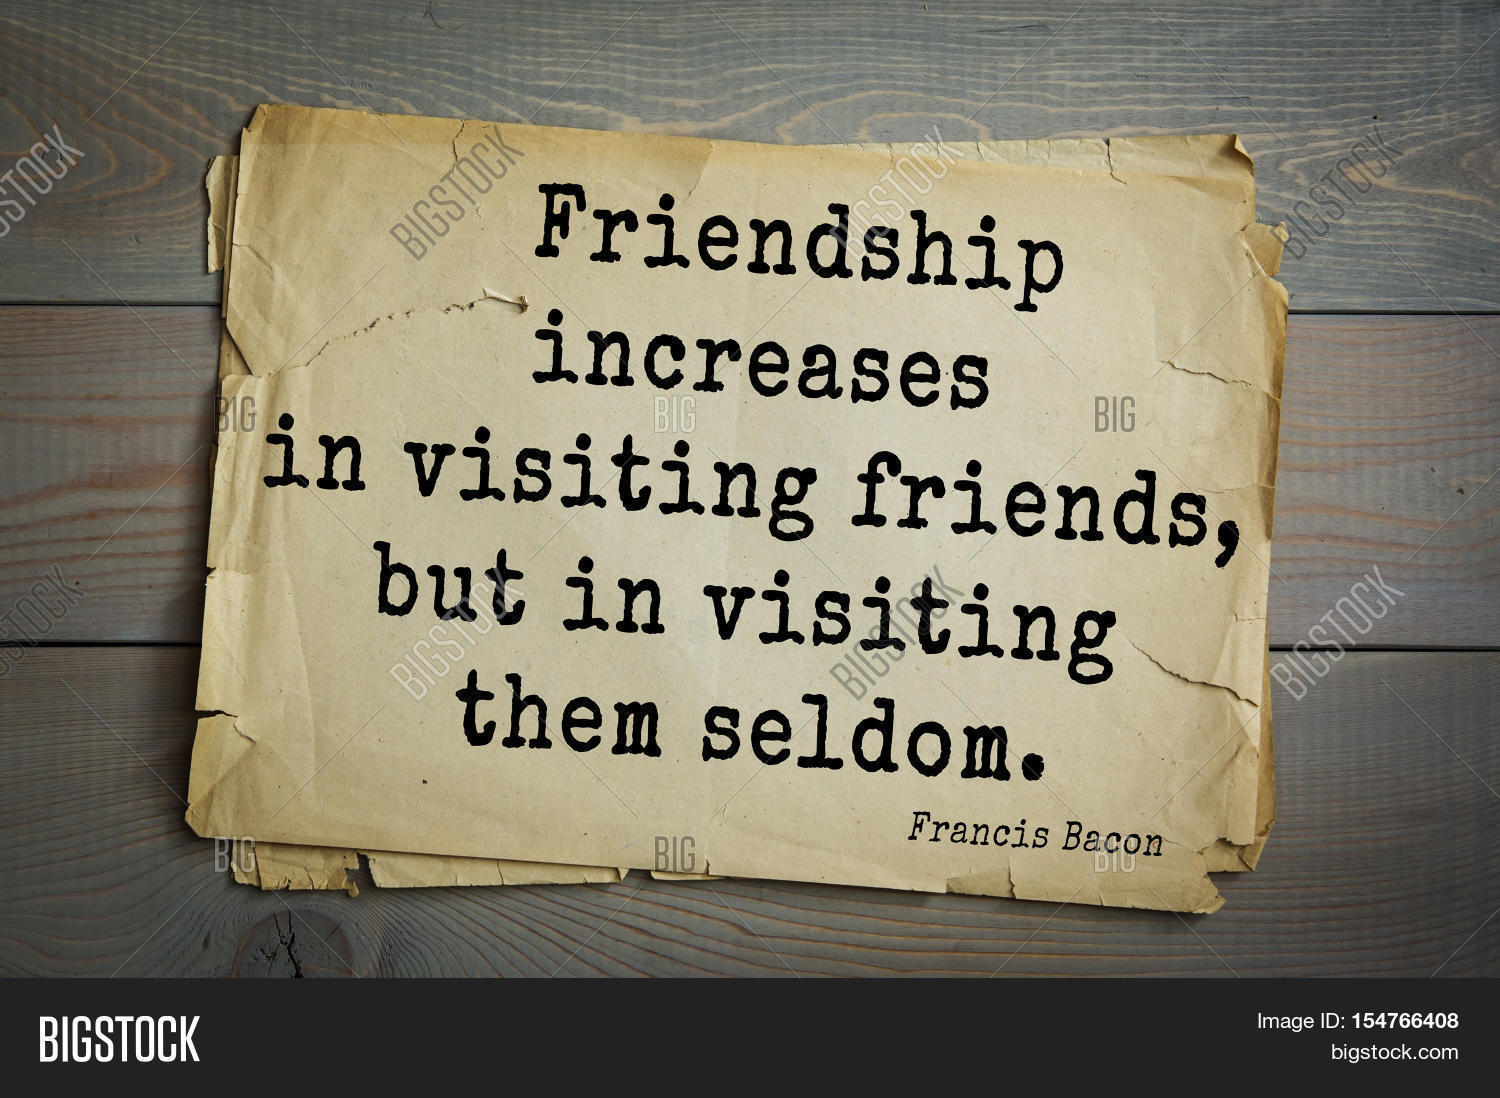 English Quotes About Friendship Top 50 Quotes Francis Bacon  Image & Photo  Bigstock